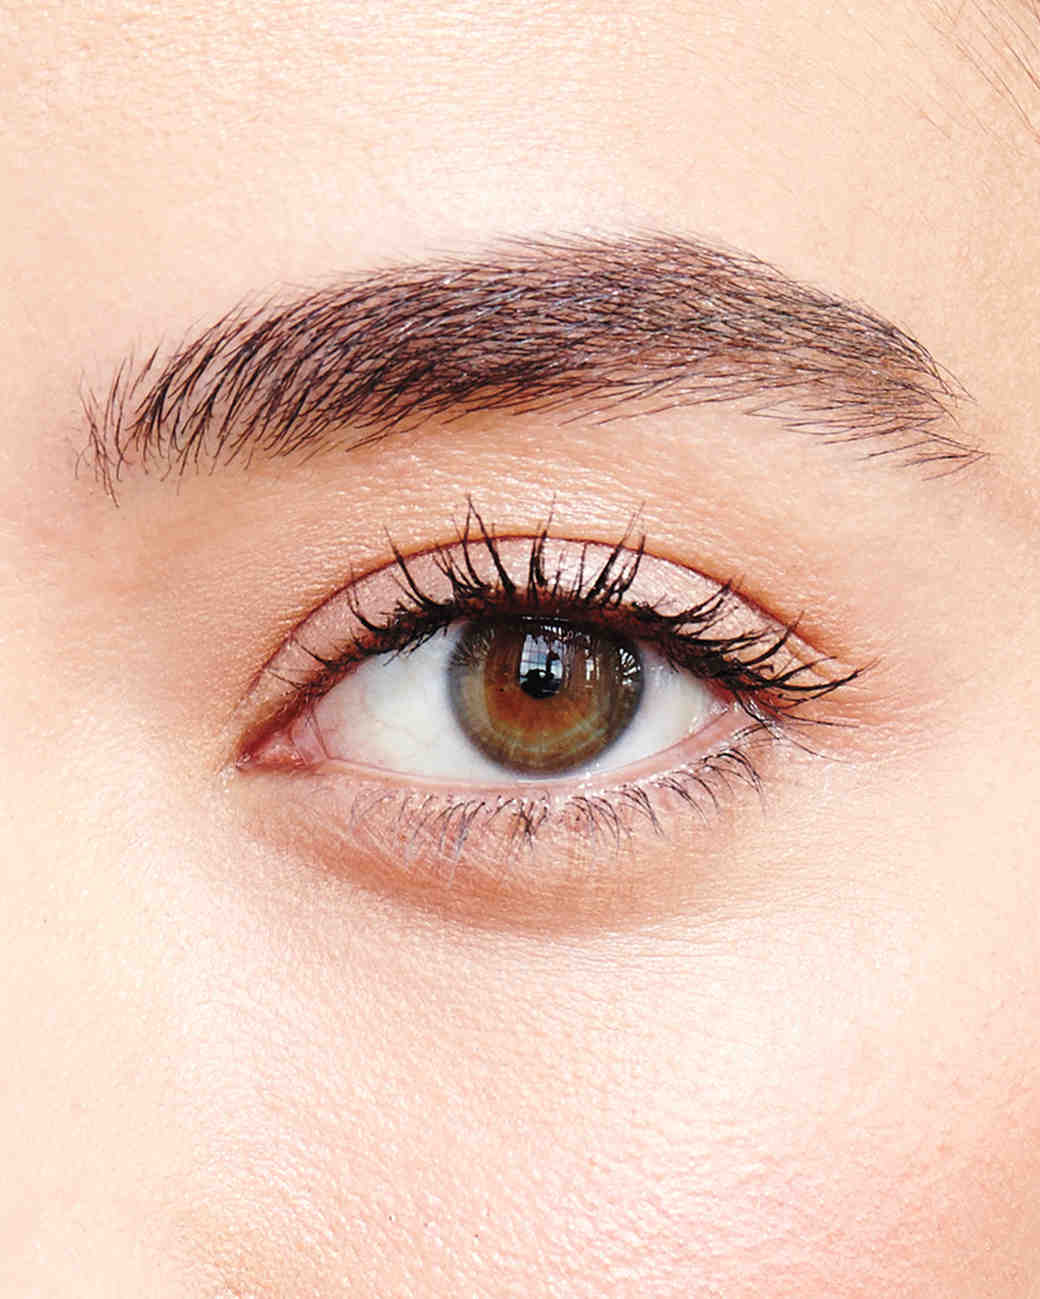 wedding day eyebrows, how to pull of wedding day eyebrows, eyebrow tips